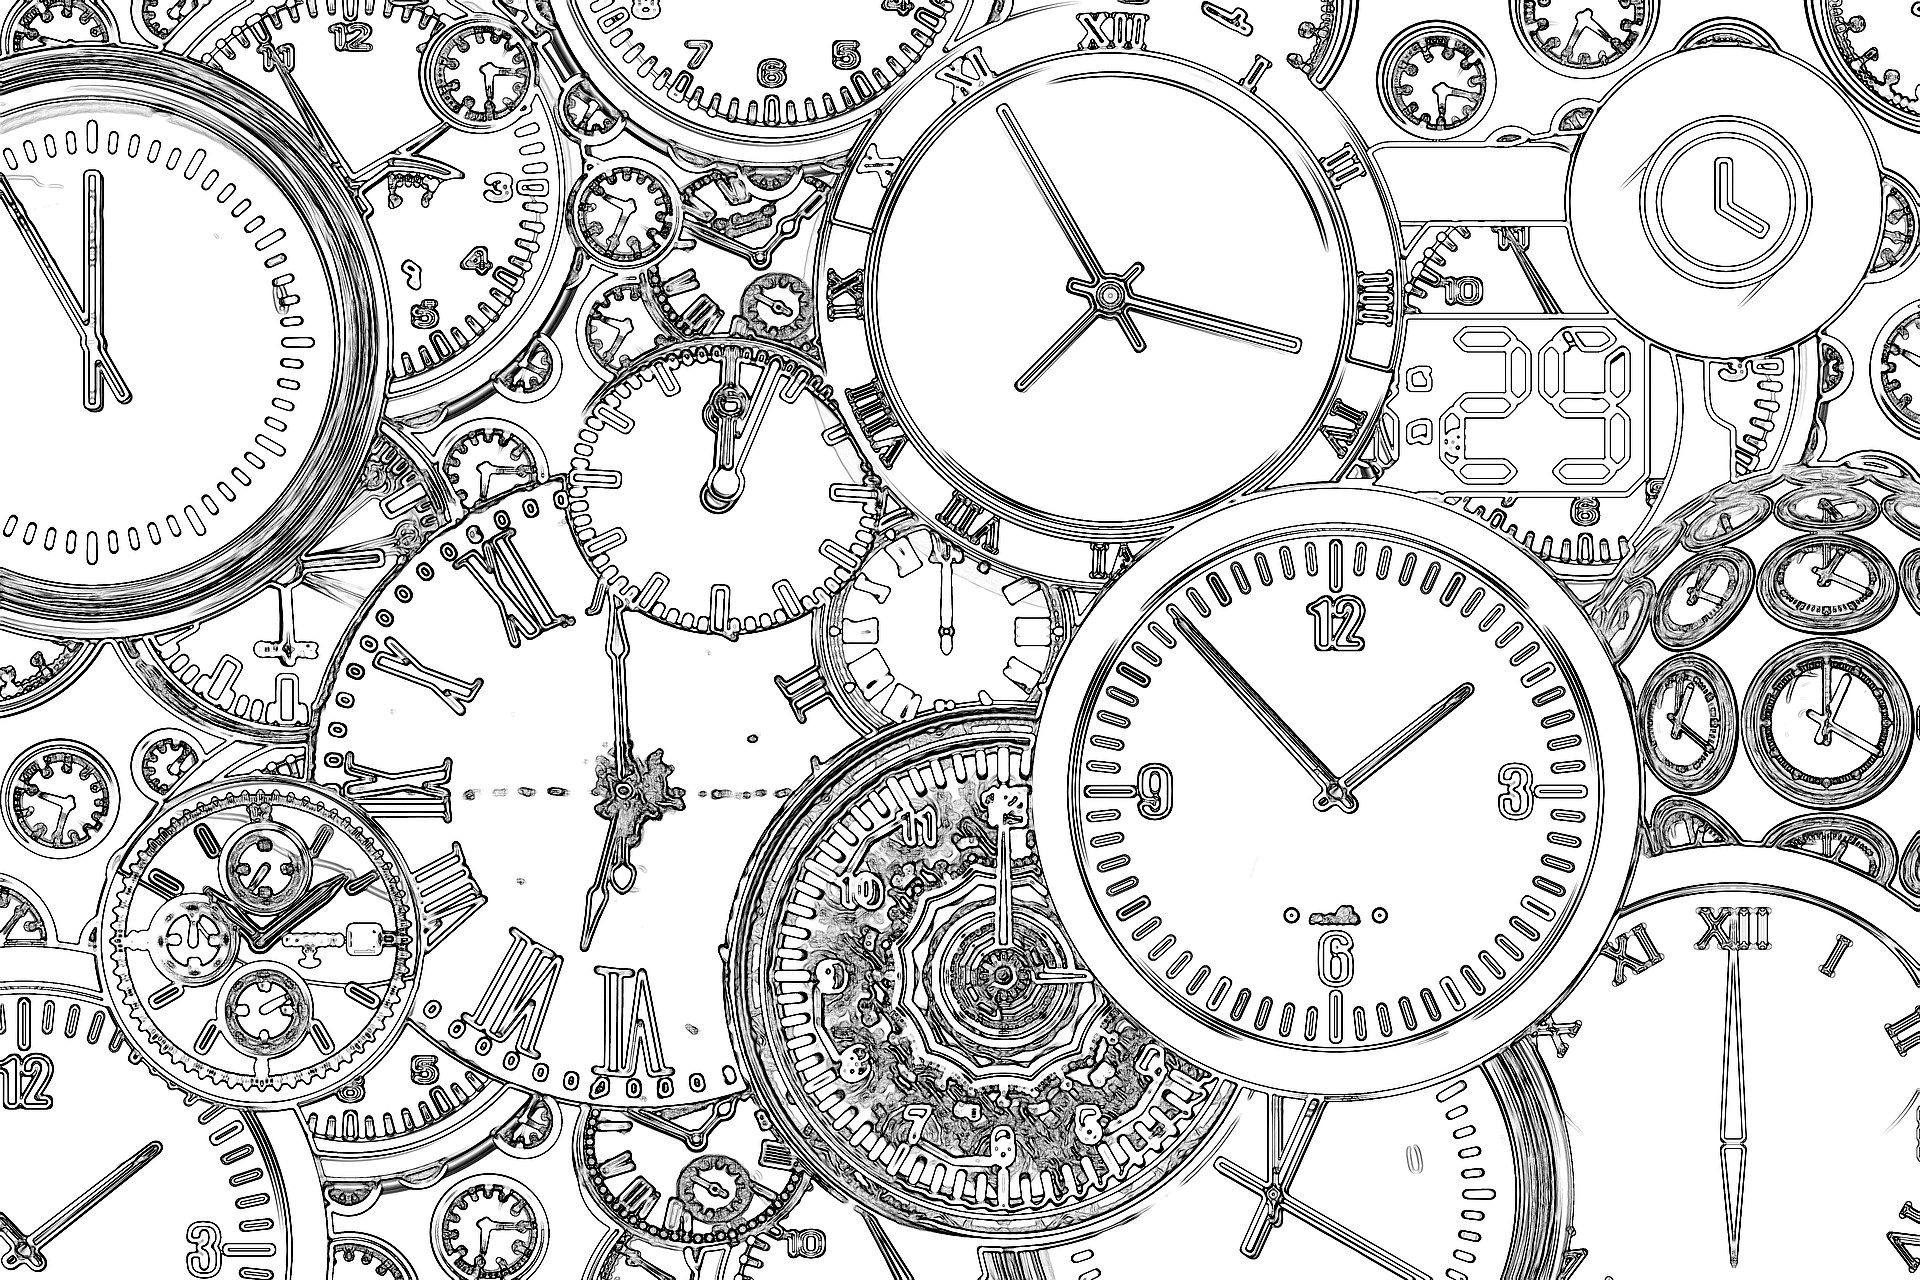 Free Printable Steampunk Clocks Coloring Page | where are my crayons ...